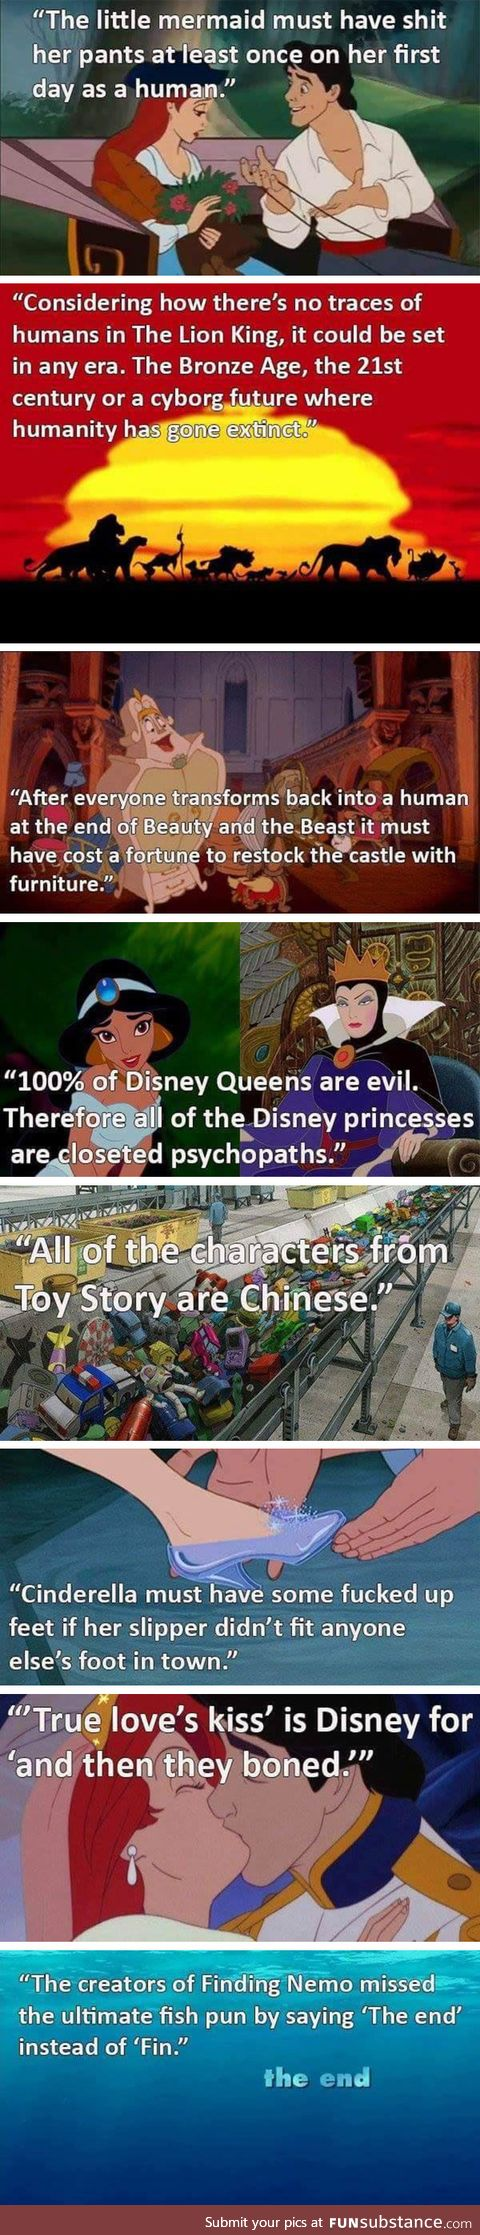 Something to think about: Disney edition